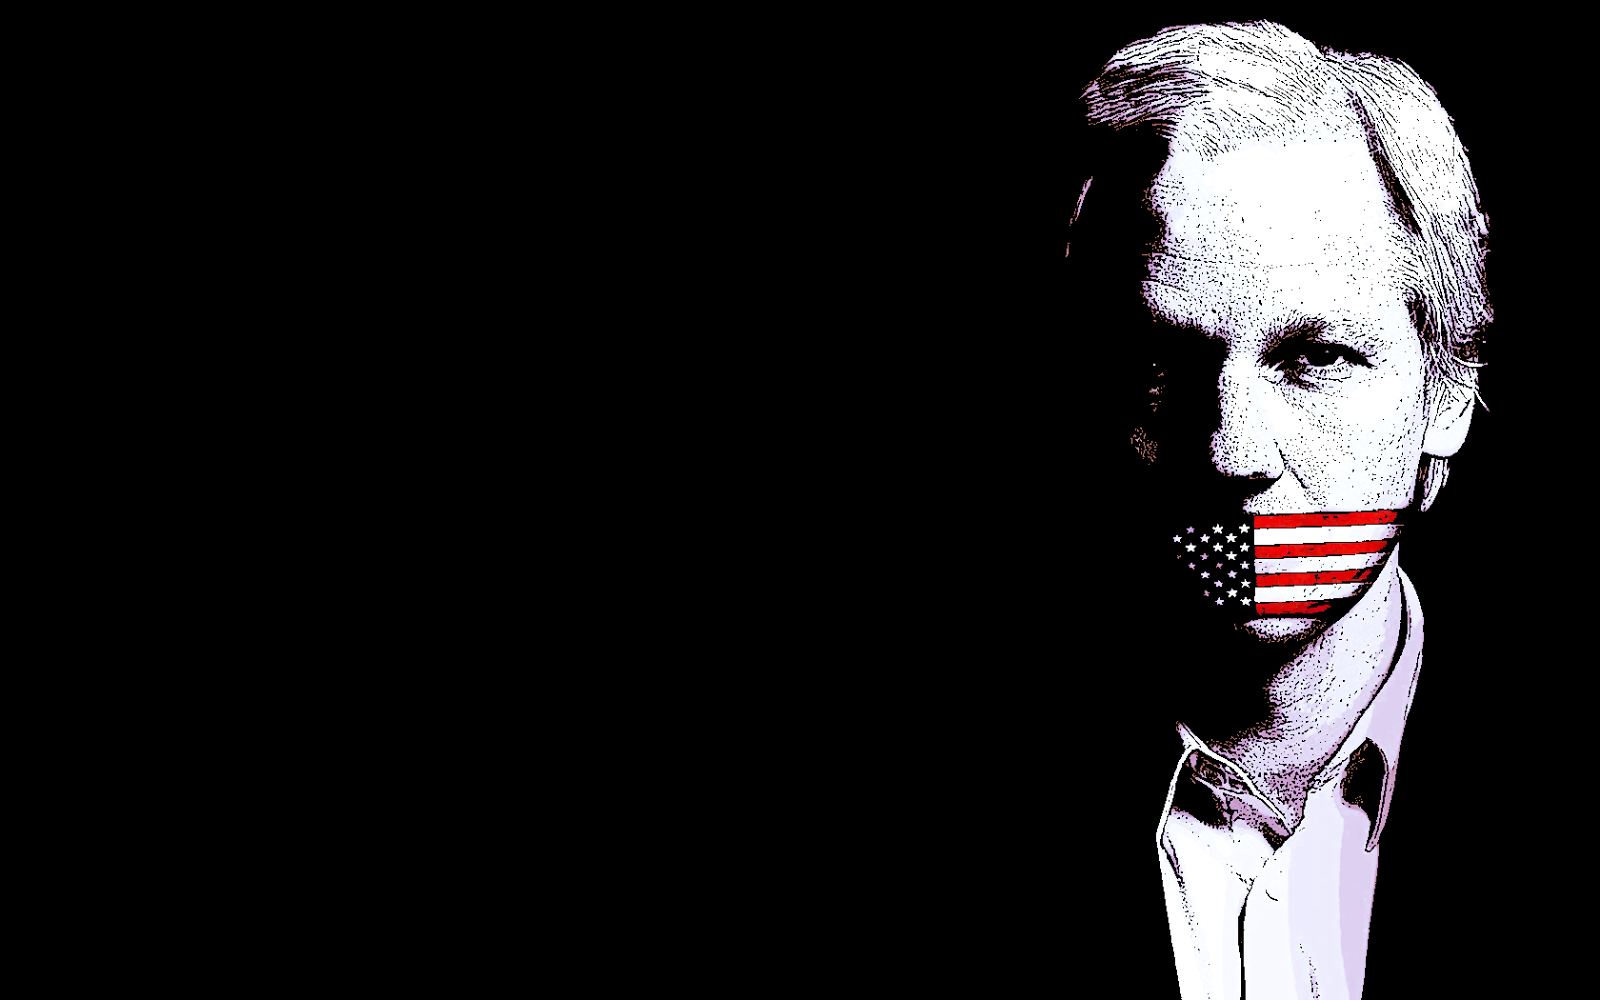 Trickytricks: Julian Assange & Wikileaks HD Wallpapers : Words of ...